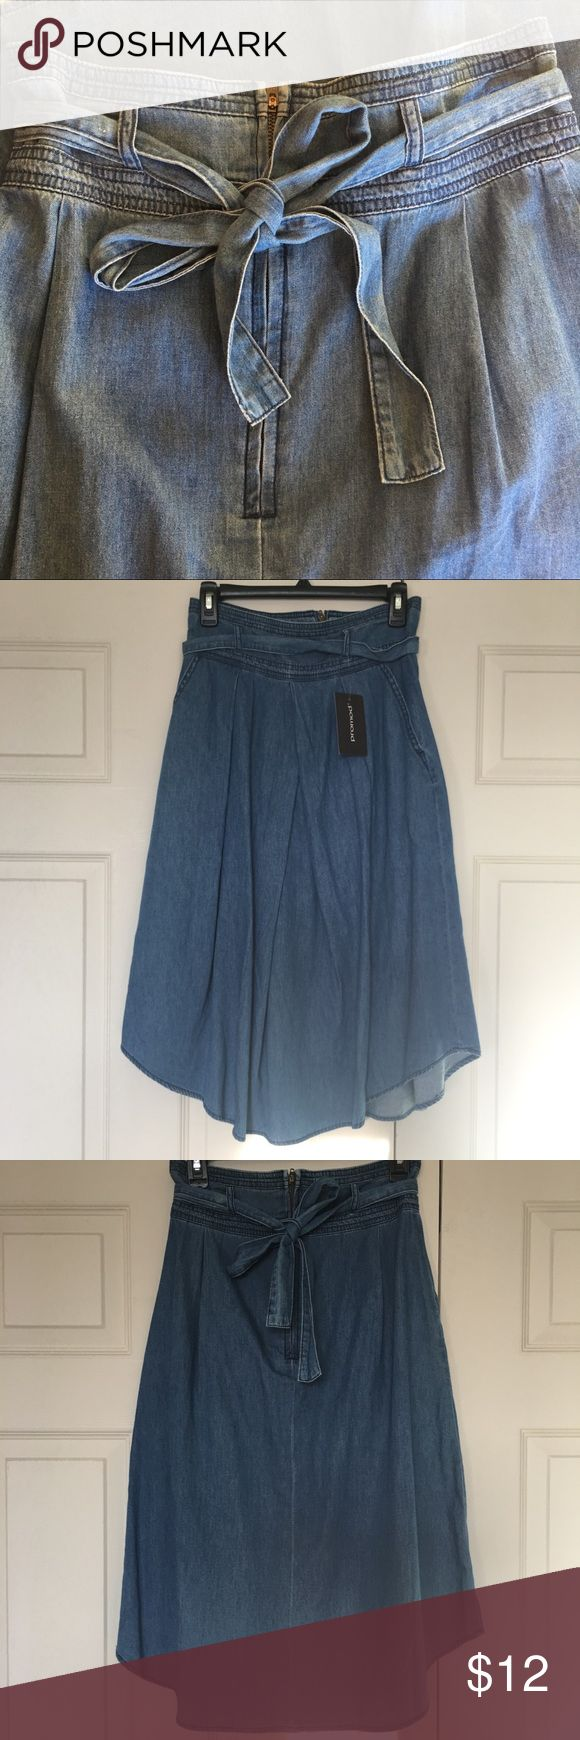 Jean Skirt NWT Jean material skirt with zipper in the back and tie around waist.  Tie can be removed if not wanted to be used.  Has pockets on sides.  Past knee length   Purchased in boutique store.   Waist 14in/36m side to side Length from waste to gem 30in/76m Size 6 Promod Skirts